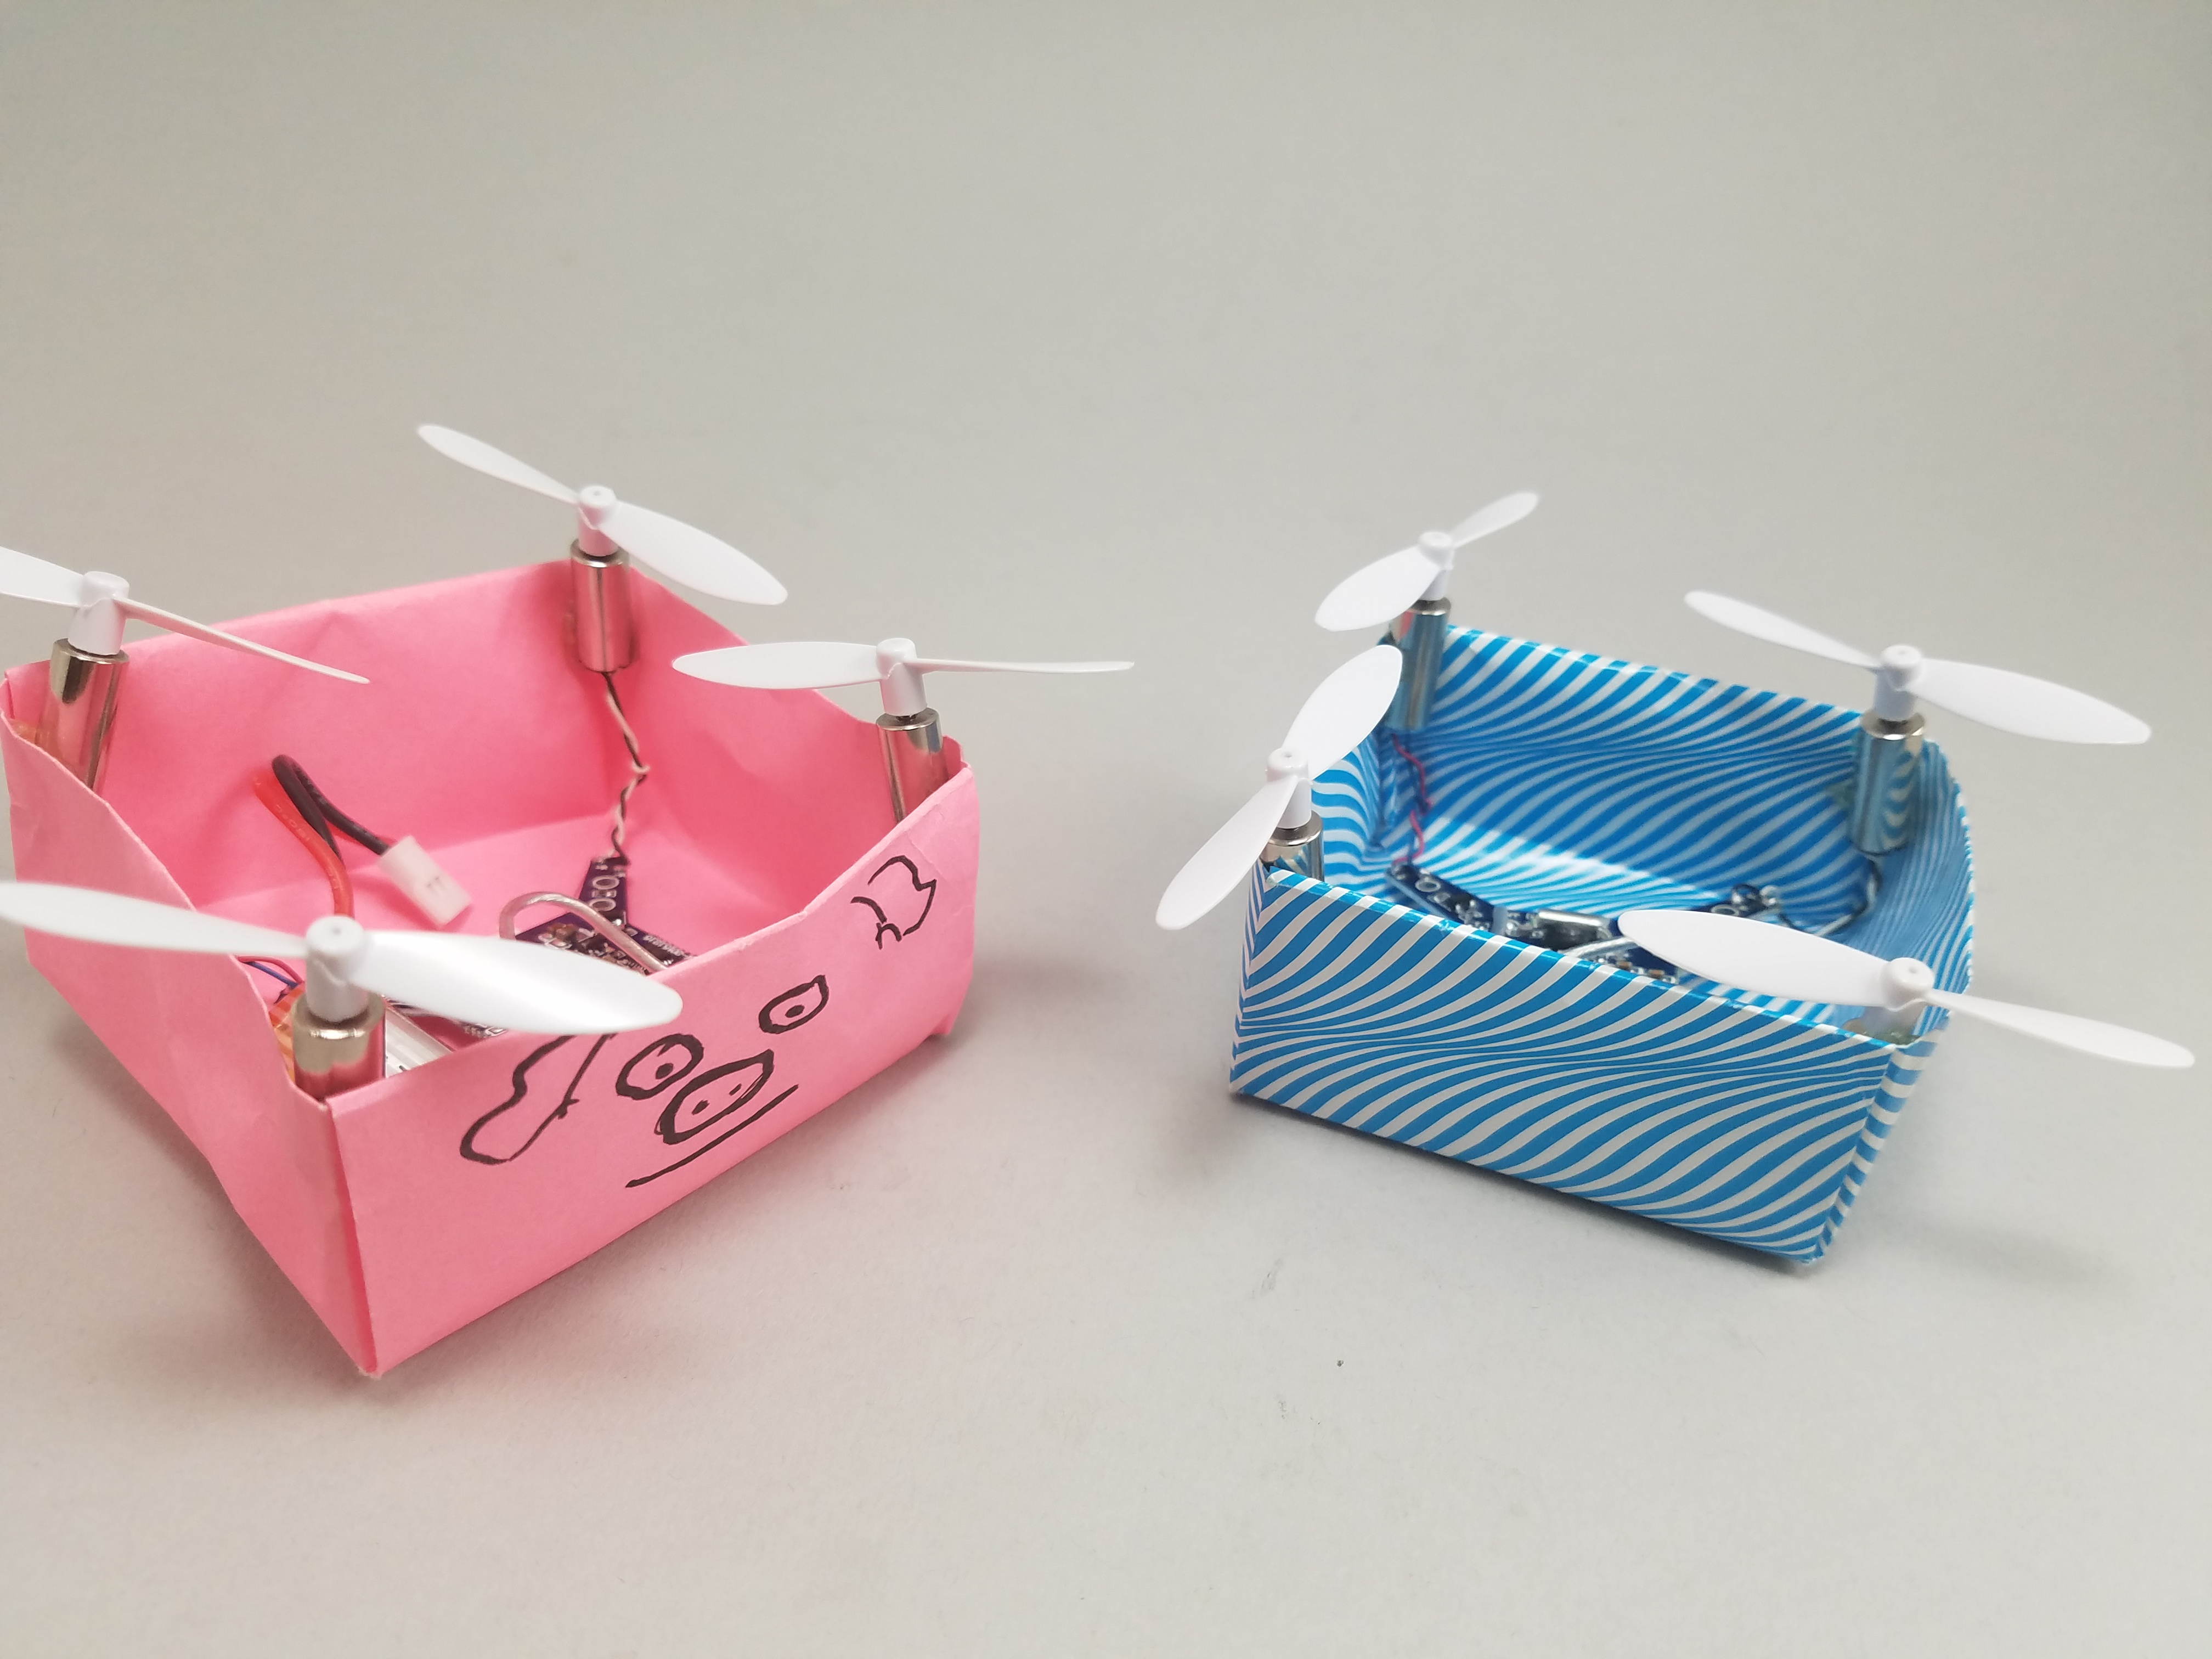 Picture of Origami Drone - When Pigs Fly!